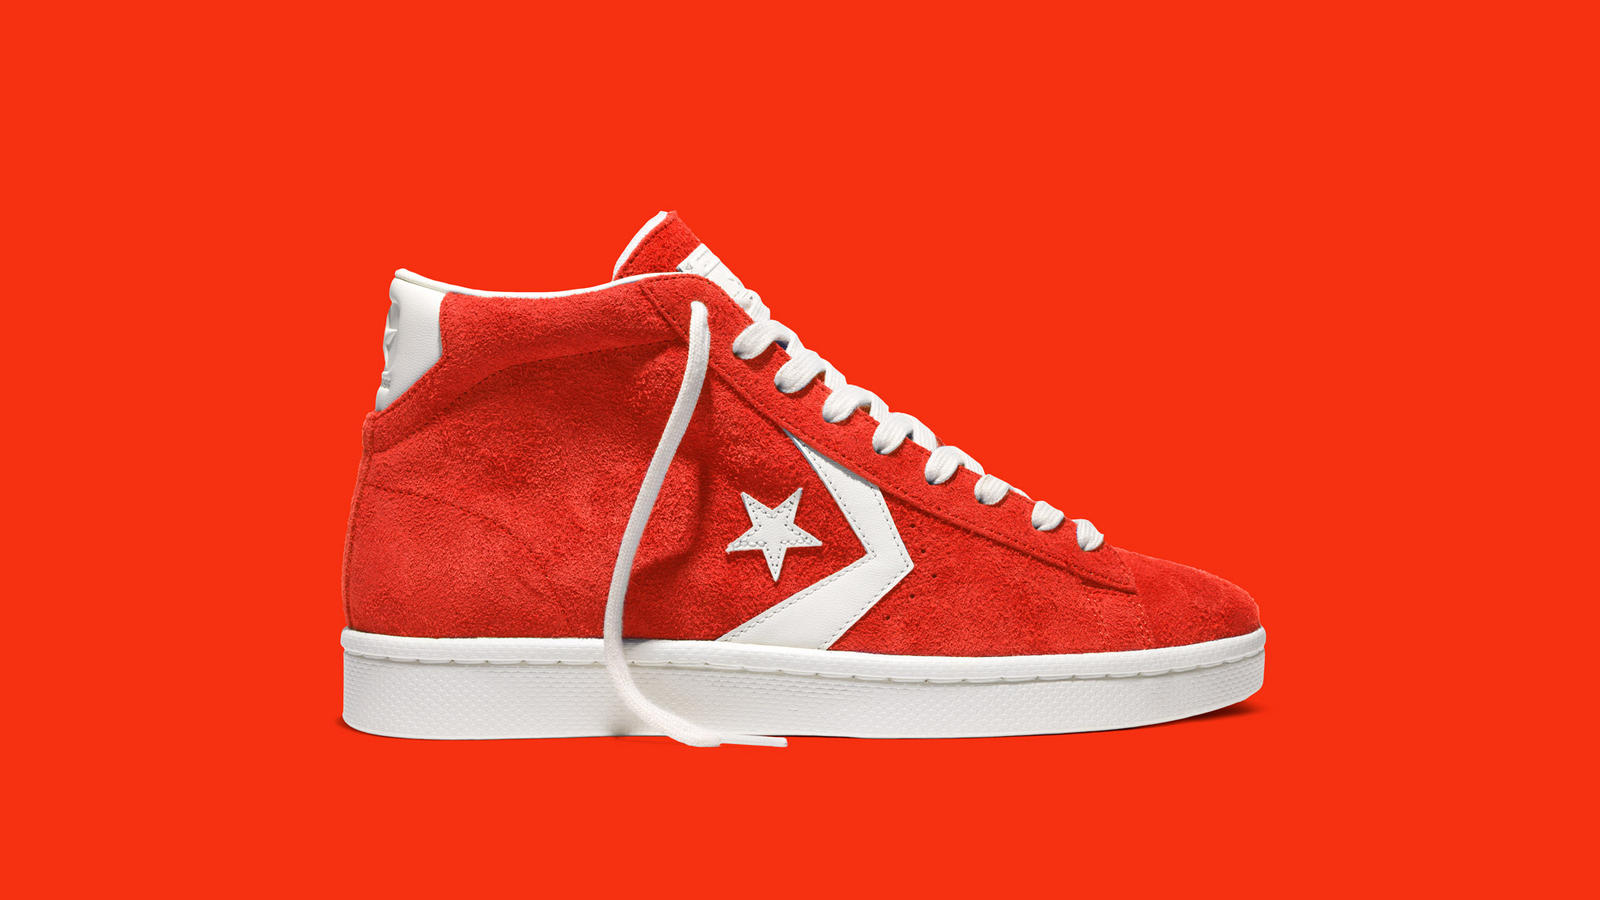 Fh16 Qs Pl76 Athletic Suede Lateral Fire